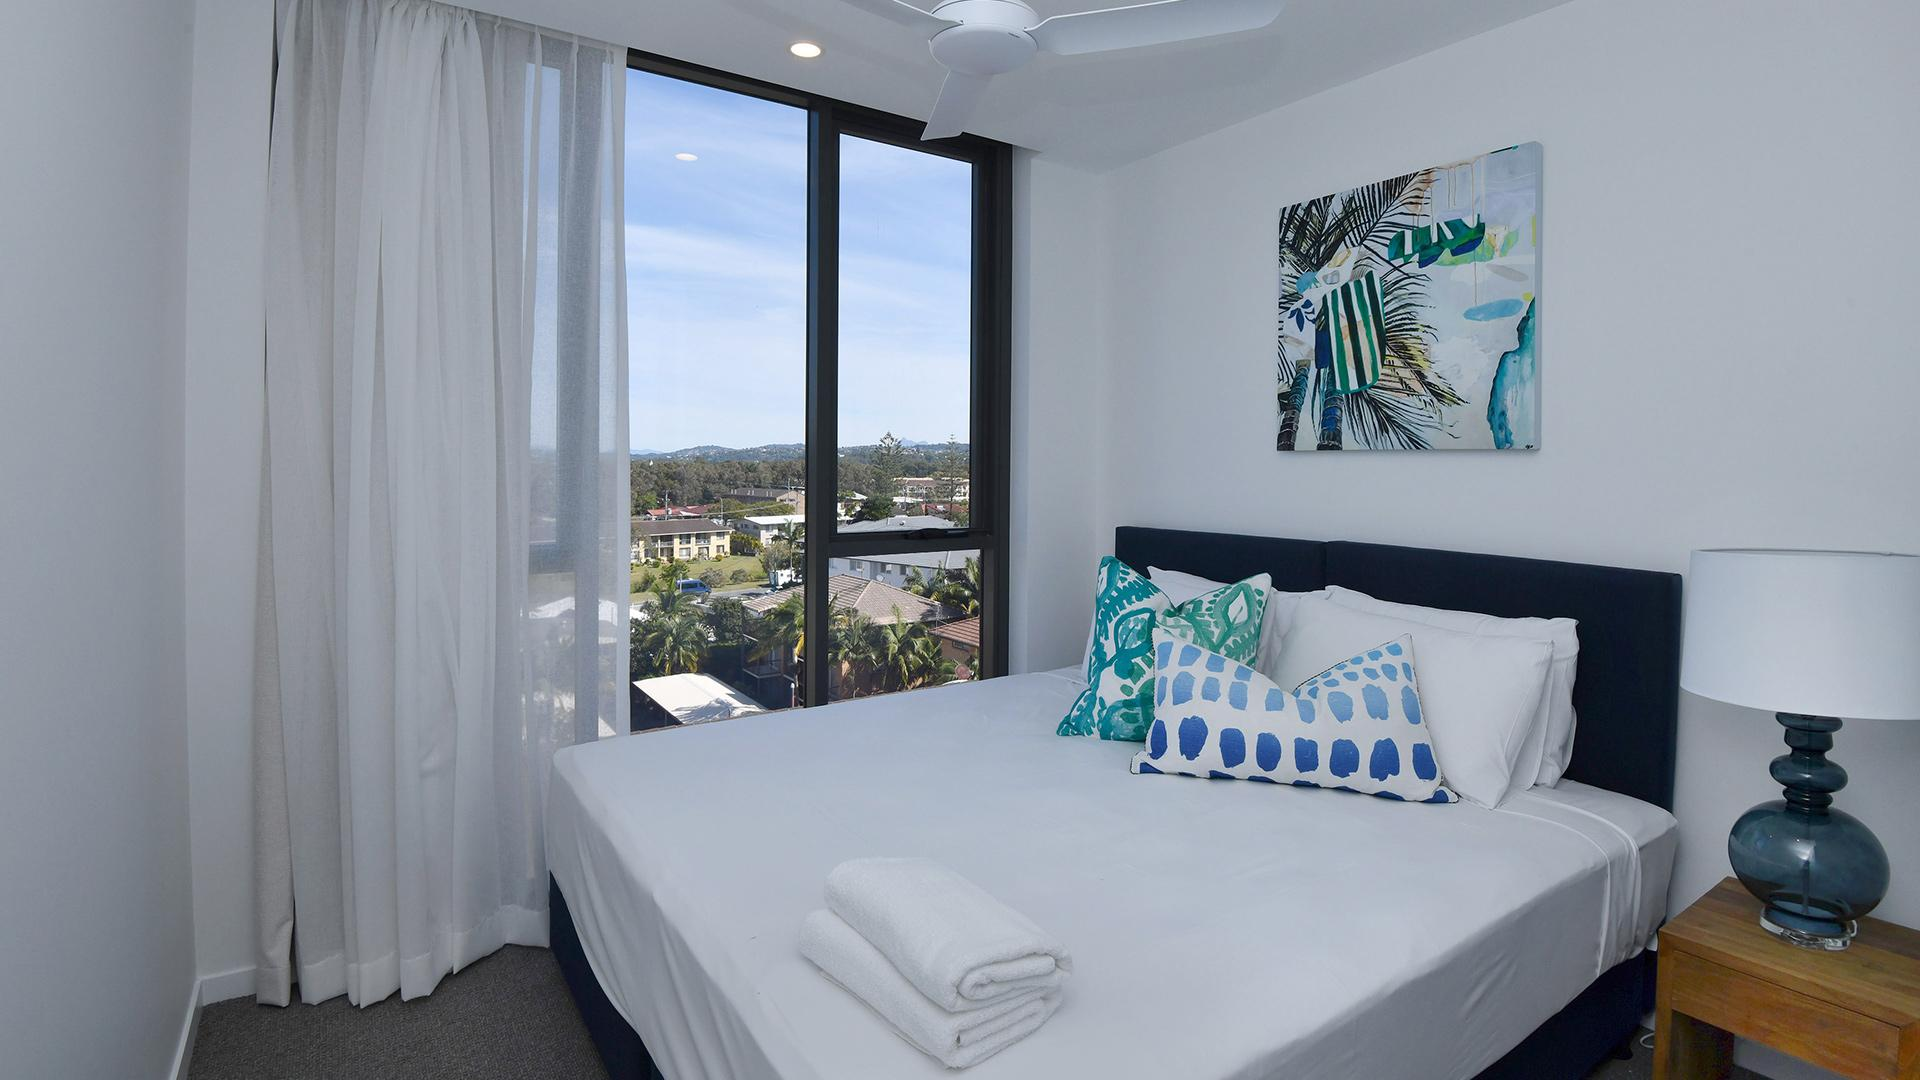 Two Bedroom Panoramic Ocean View Apartment image 1 at X Kirra Apartments by City of Gold Coast, Queensland, Australia